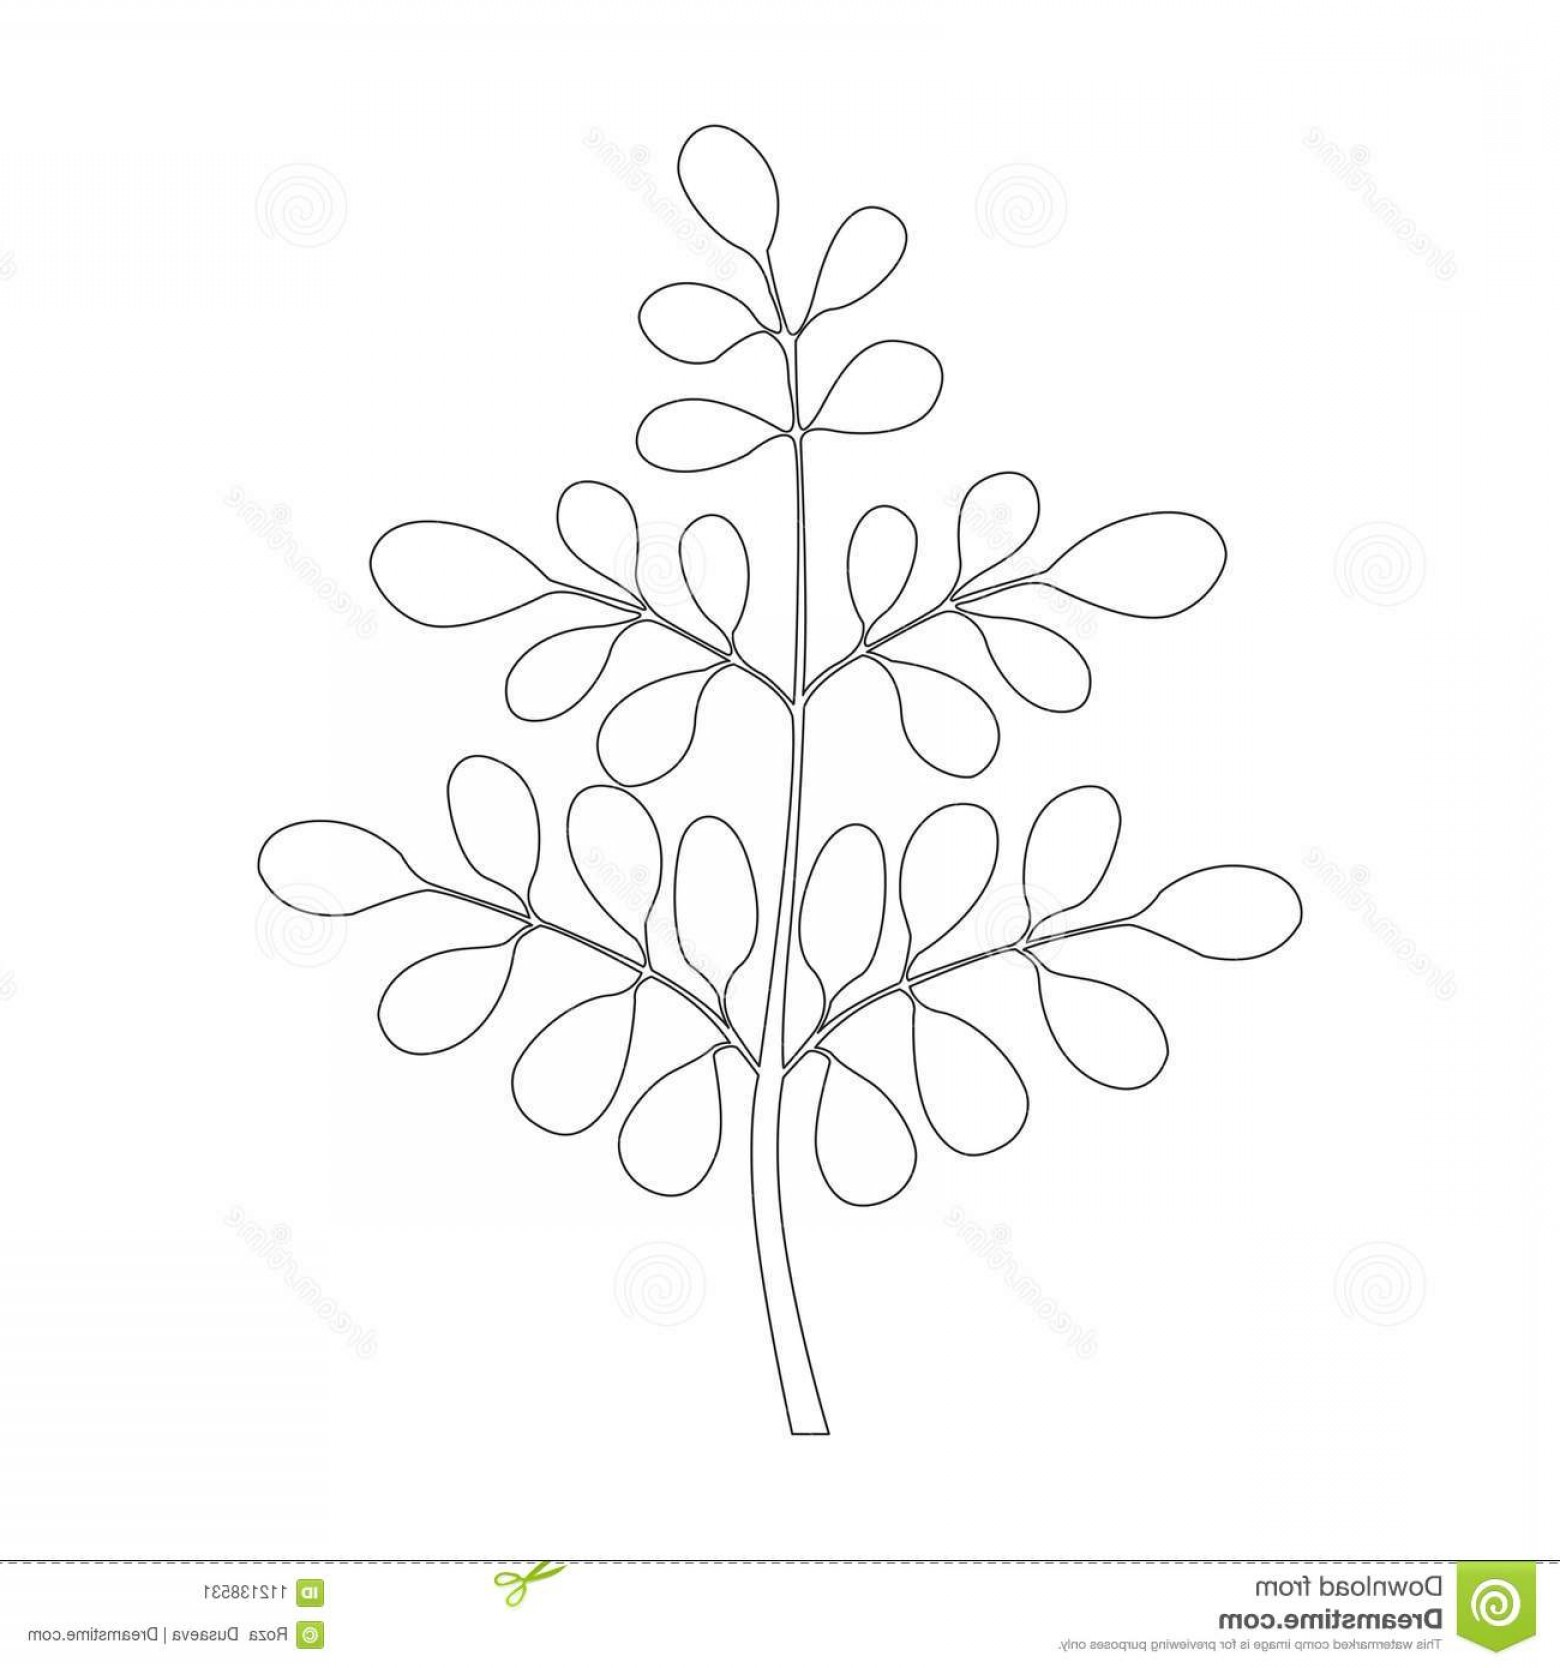 Continuous Tree Branch Vector Image: Moringa Tree Continuous One Line Continuous One Line Drawing Moringa Tree Isolated White Background Vector Illustration Image